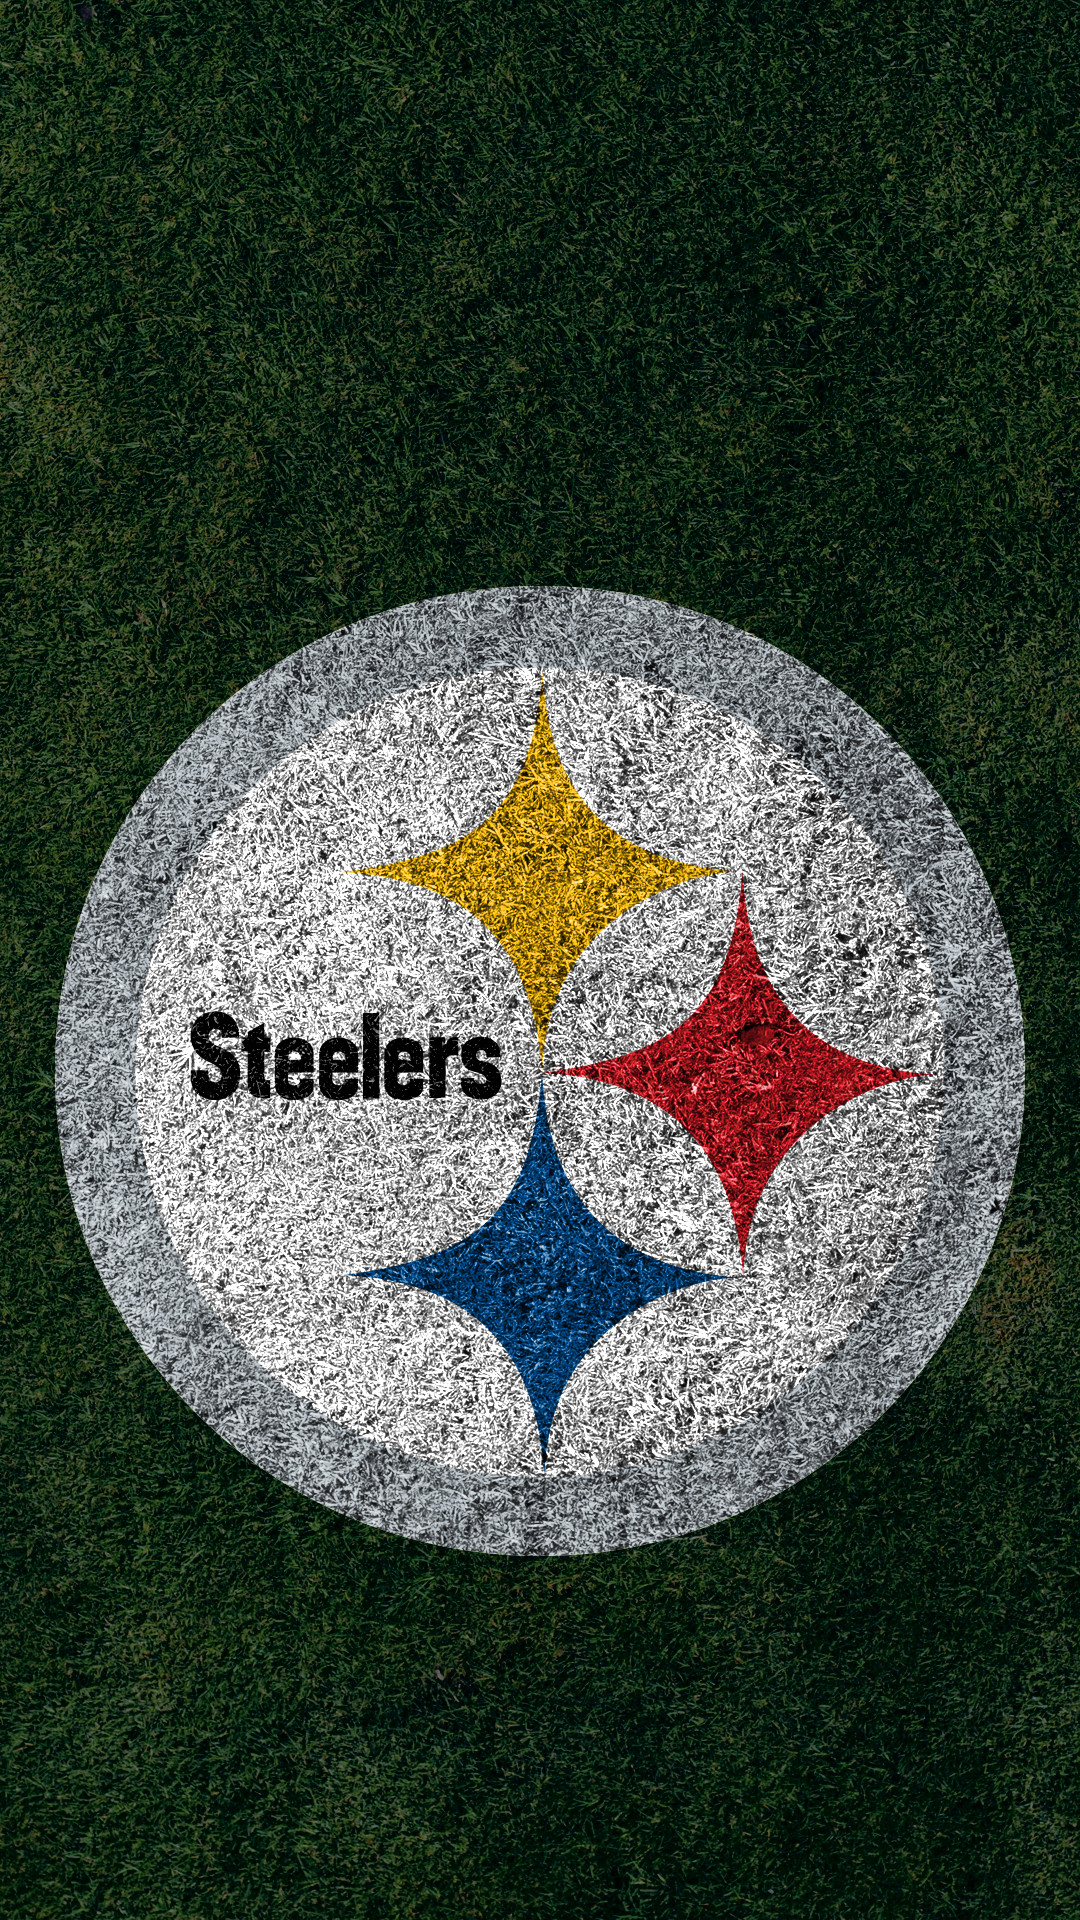 Steelers Wallpaper 2018 70 Images